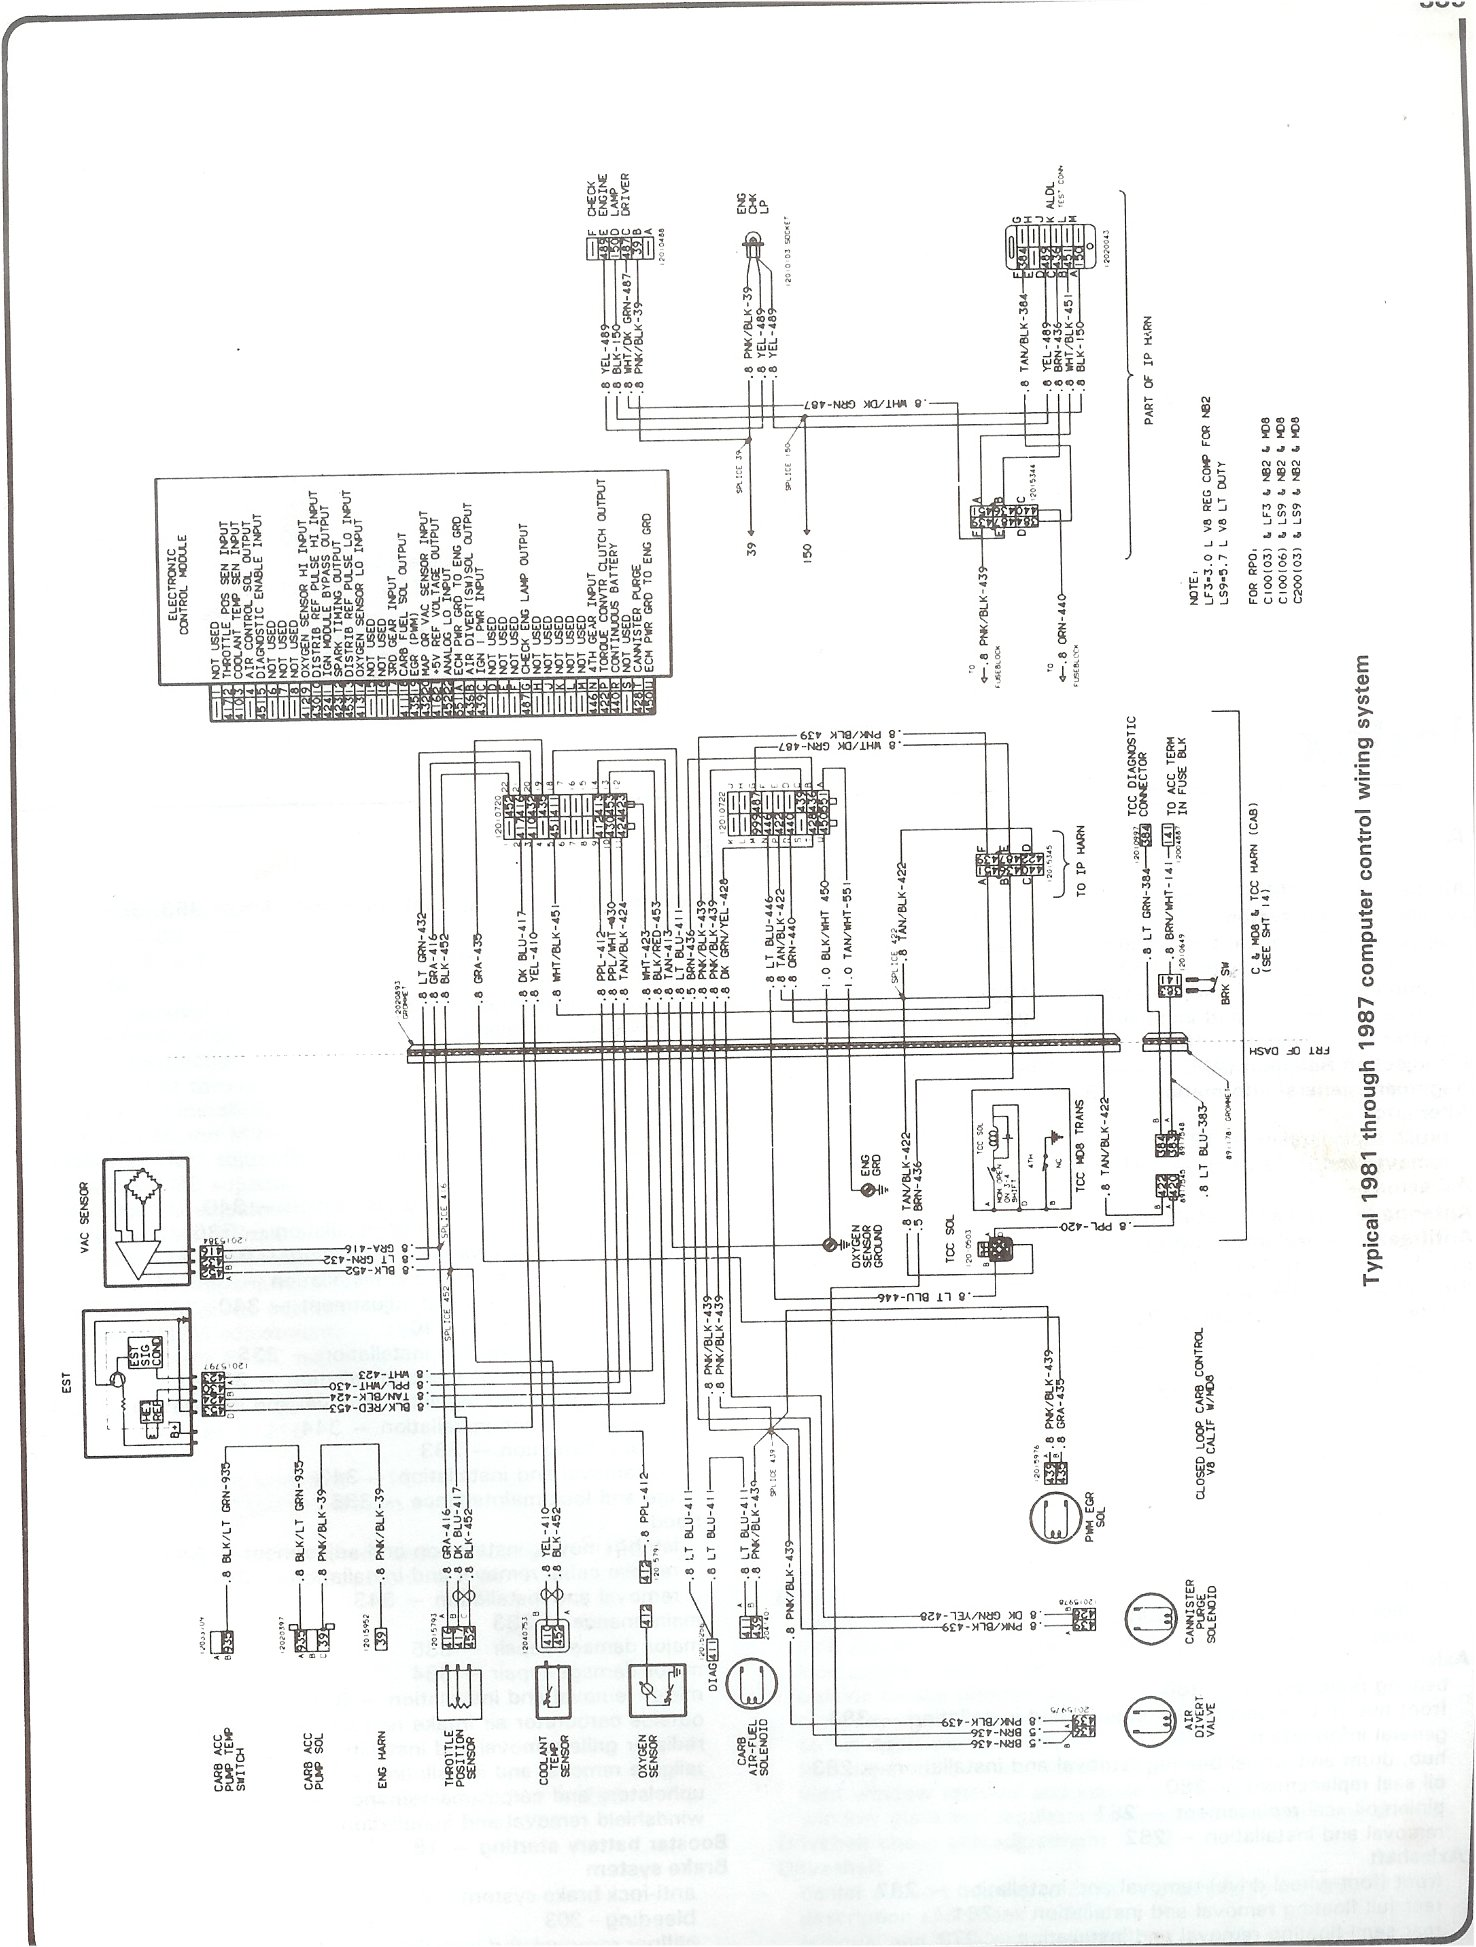 complete 73 87 wiring diagrams rh forum 73 87chevytrucks com chevy truck wiring diagram download chevy truck wiring schematics